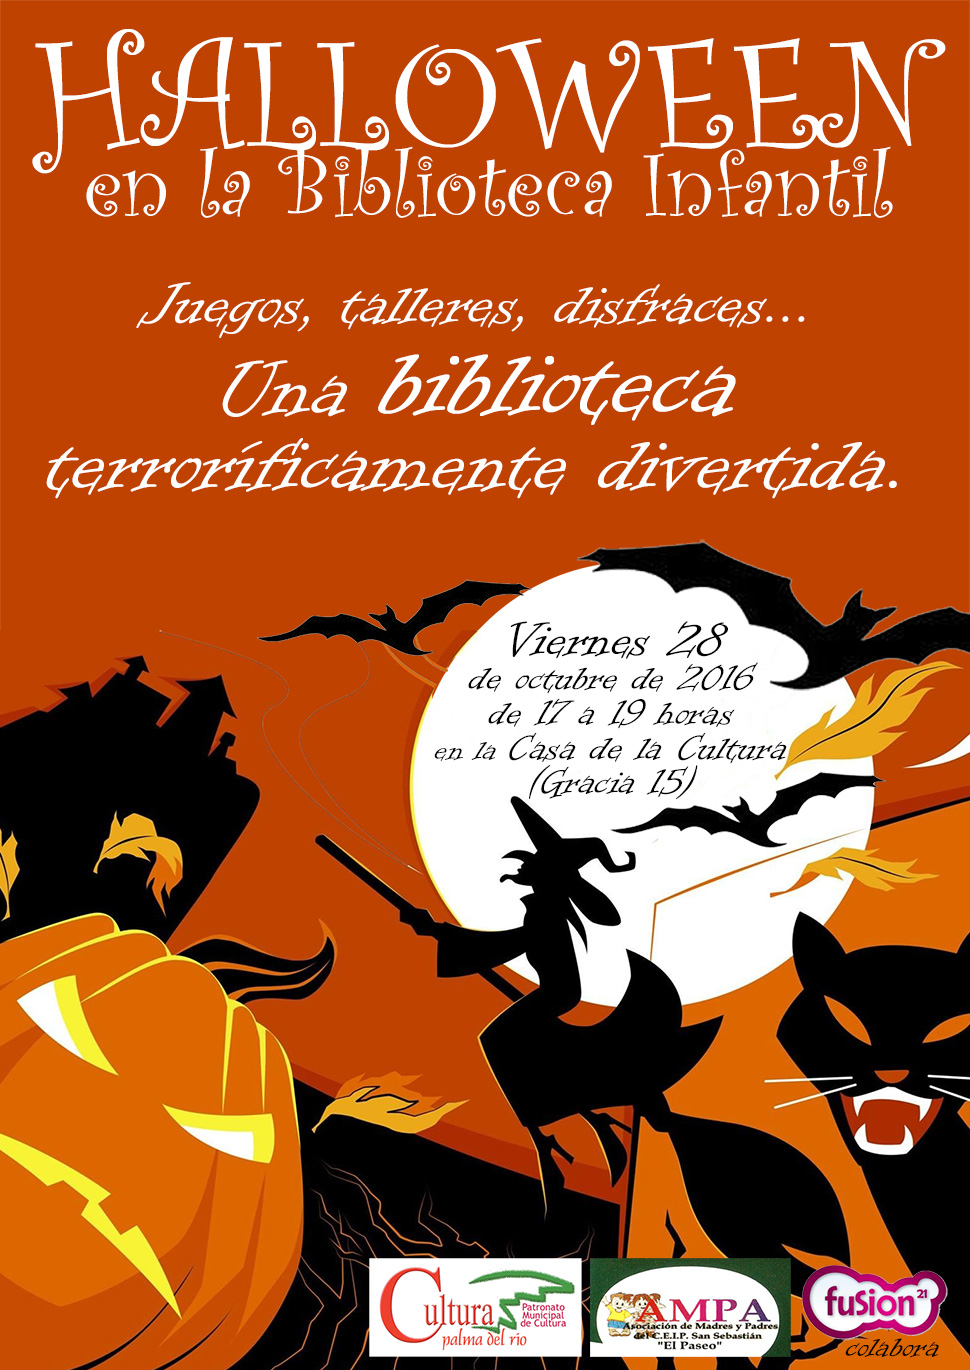 https://www.palmadelrio.es/sites/default/files/cartel-halloween-biblioteca-2016.jpg